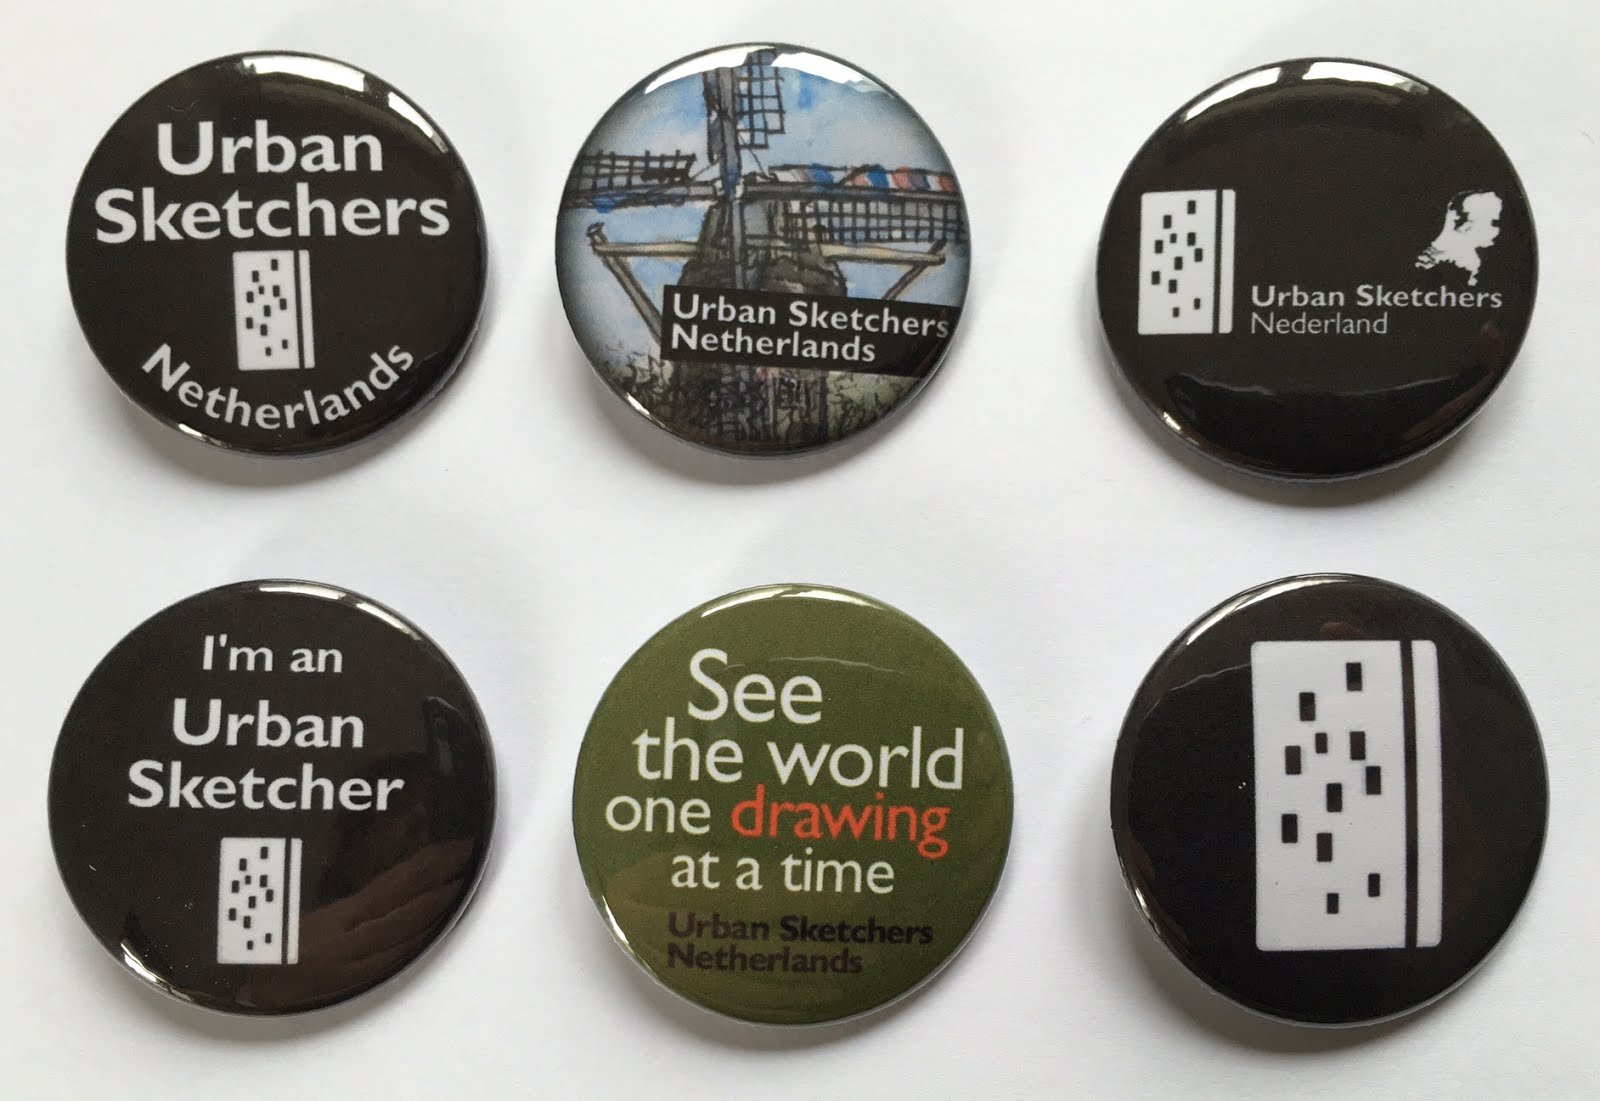 Get hold of these buttons